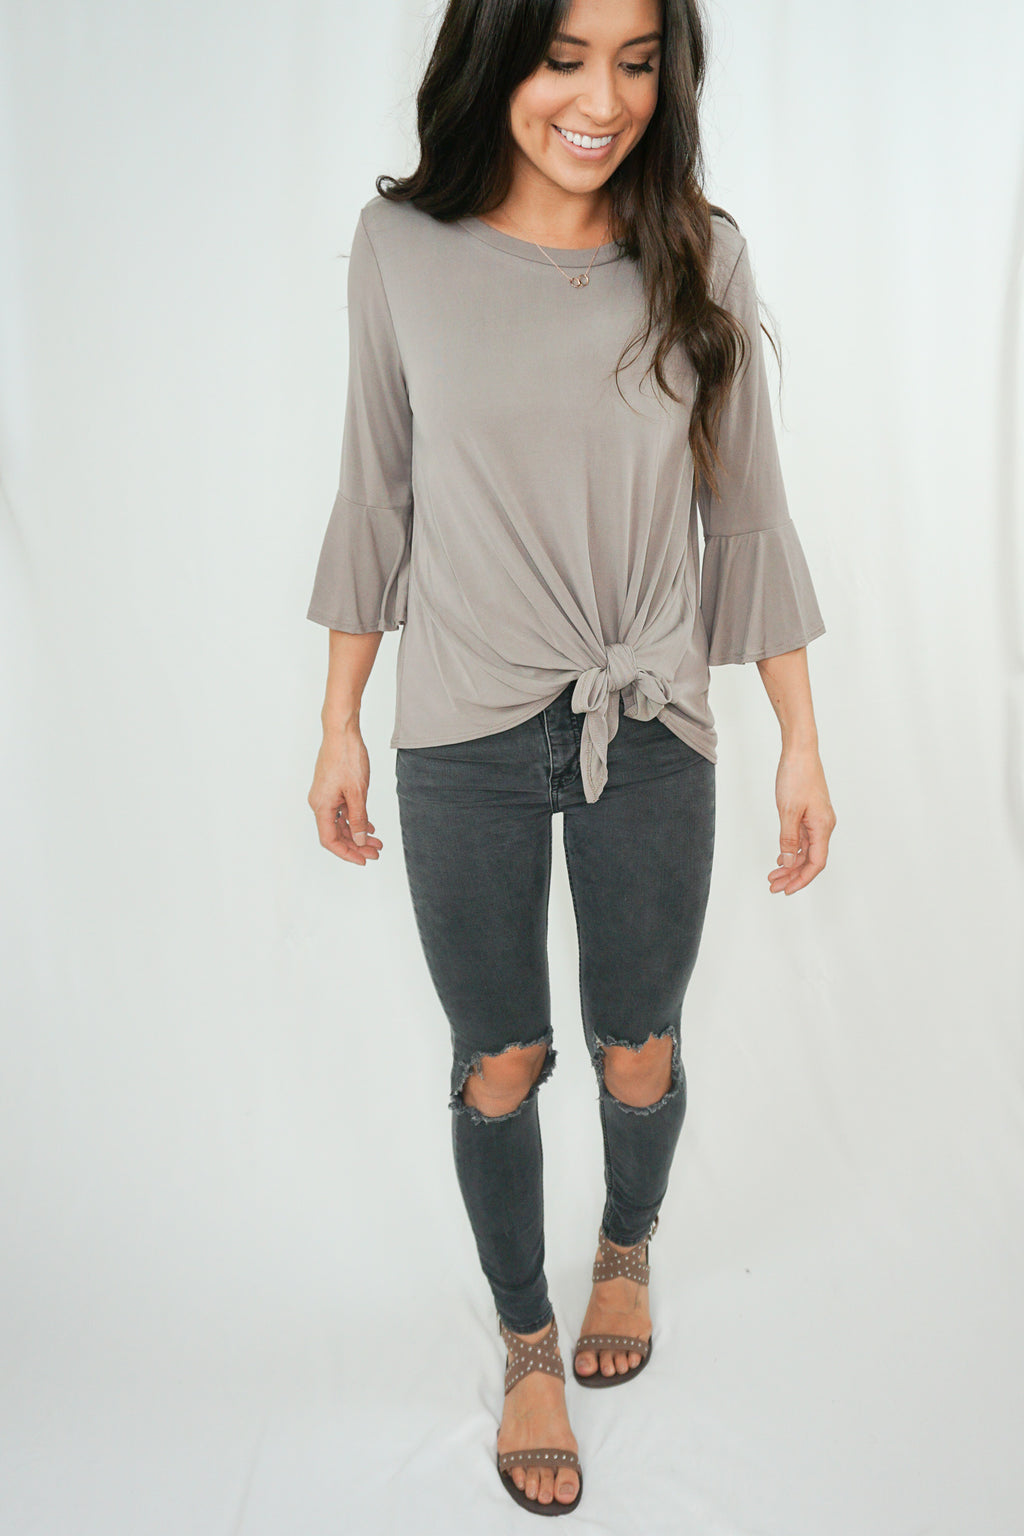 Southern Belle Sleeve Top